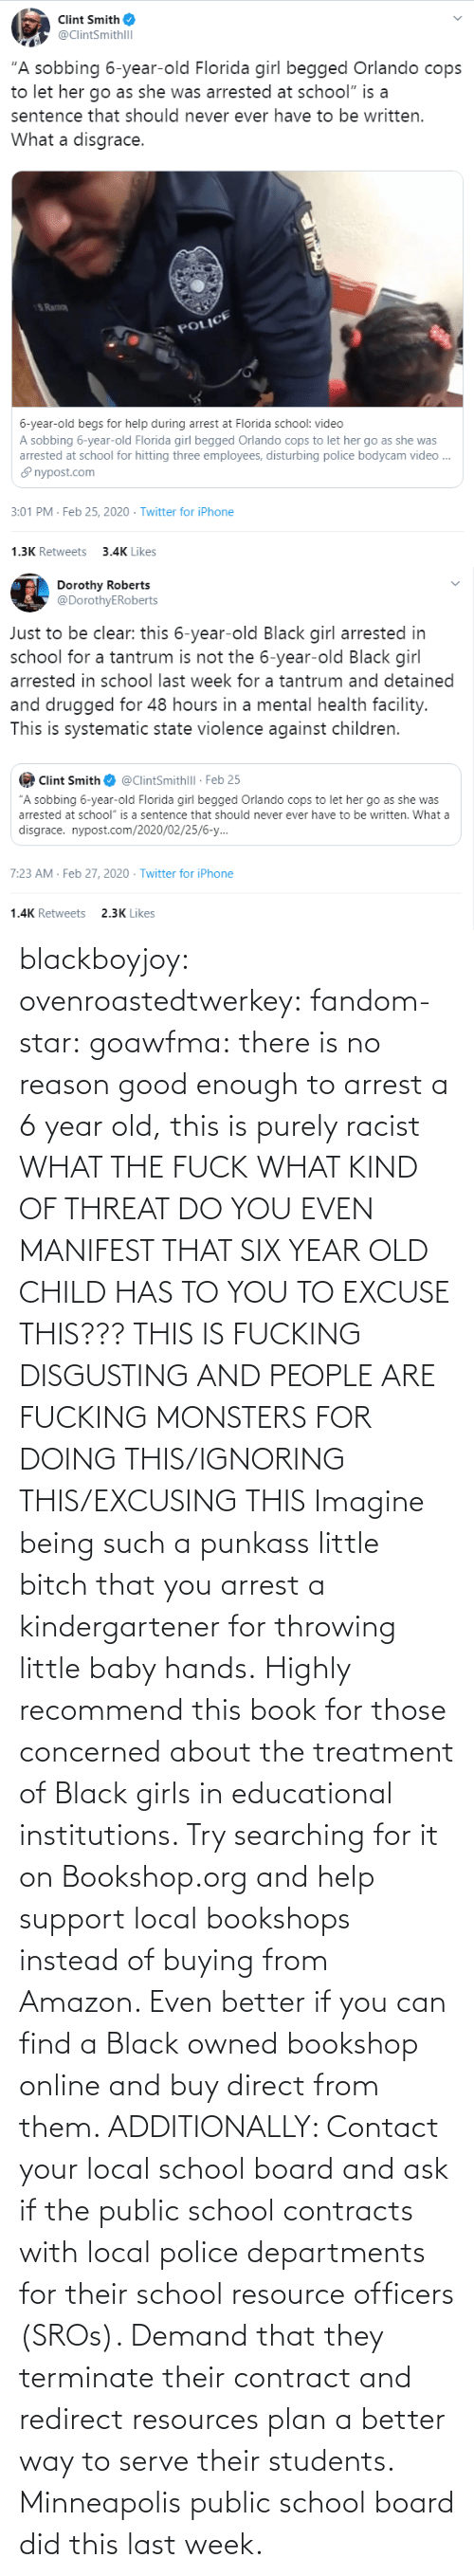 Plan: blackboyjoy:  ovenroastedtwerkey:  fandom-star:  goawfma: there is no reason good enough to arrest a 6 year old, this is purely racist WHAT THE FUCK WHAT KIND OF THREAT DO YOU EVEN MANIFEST THAT SIX YEAR OLD CHILD HAS TO YOU TO EXCUSE THIS??? THIS IS FUCKING DISGUSTING AND PEOPLE ARE FUCKING MONSTERS FOR DOING THIS/IGNORING THIS/EXCUSING THIS    Imagine being such a punkass little bitch that you arrest a kindergartener for throwing little baby hands.  Highly recommend this book for those concerned about the treatment of Black girls in educational institutions.  Try searching for it on Bookshop.org and help support local bookshops instead of buying from Amazon. Even better if you can find a Black owned bookshop online and buy direct from them.  ADDITIONALLY: Contact your local school board and ask if the public school contracts with local police departments for their school resource officers (SROs). Demand that they terminate their contract and redirect resources plan a better way to serve their students. Minneapolis public school board did this last week.